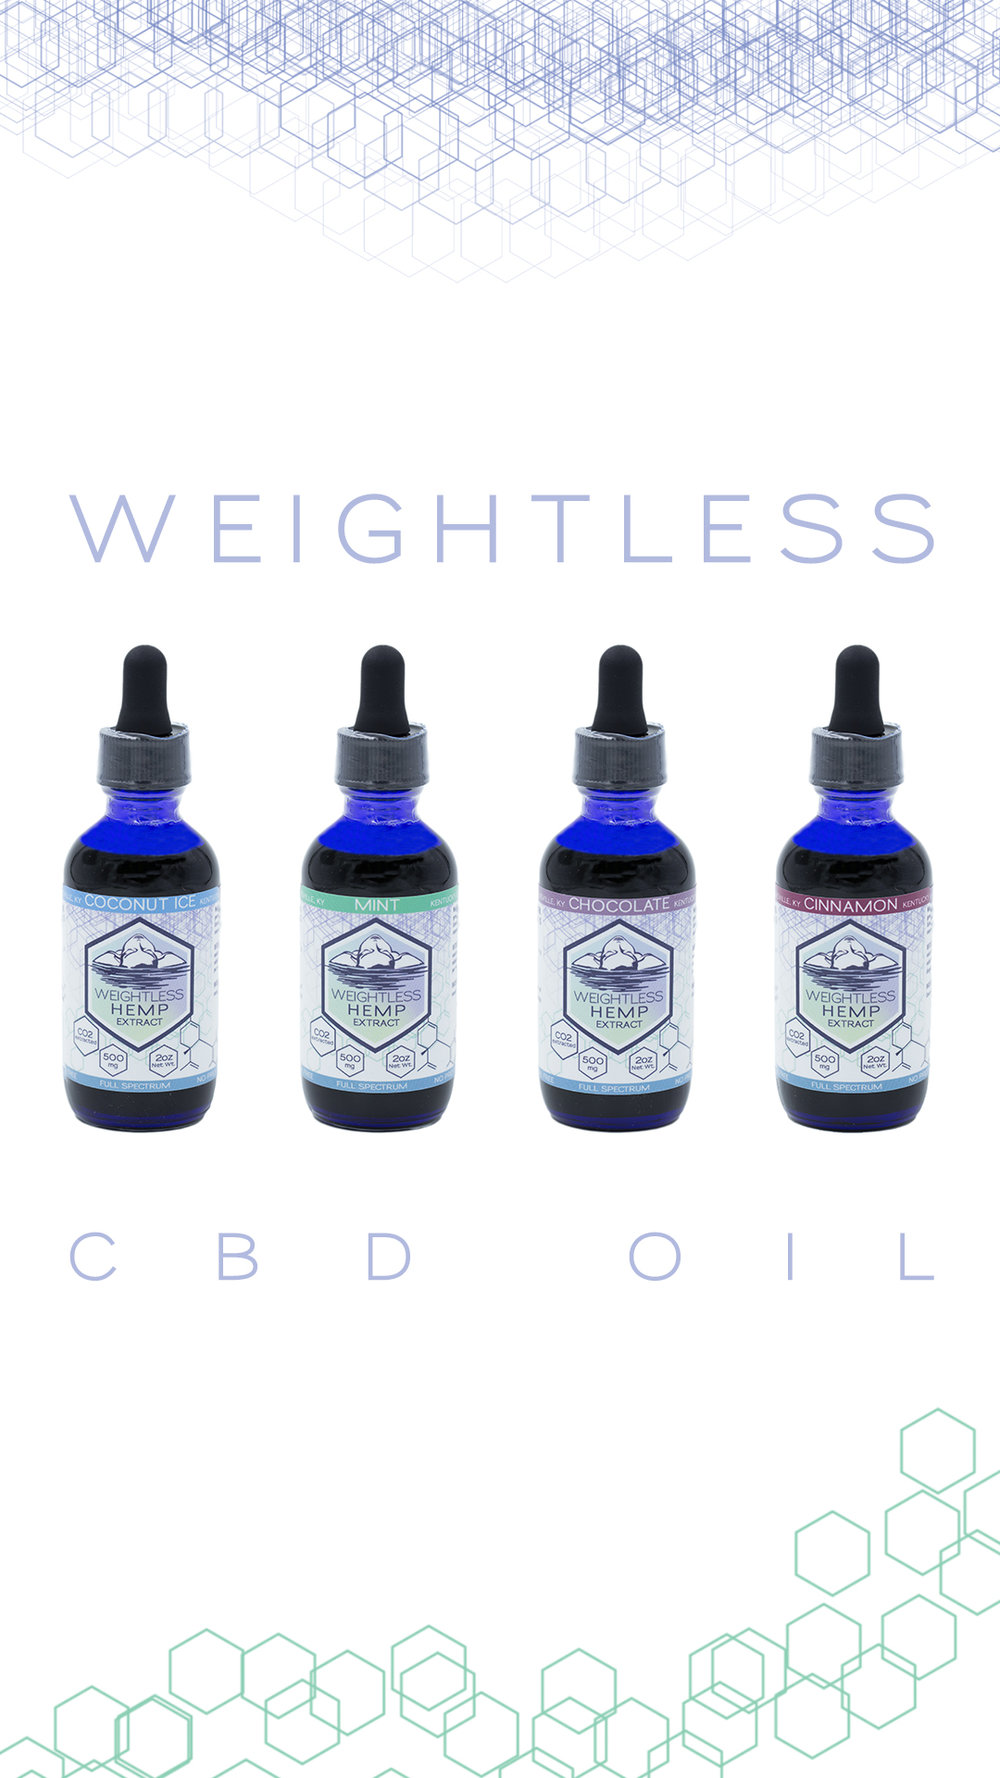 Weightless CBD Oil IG Story_CBD OIL.jpg